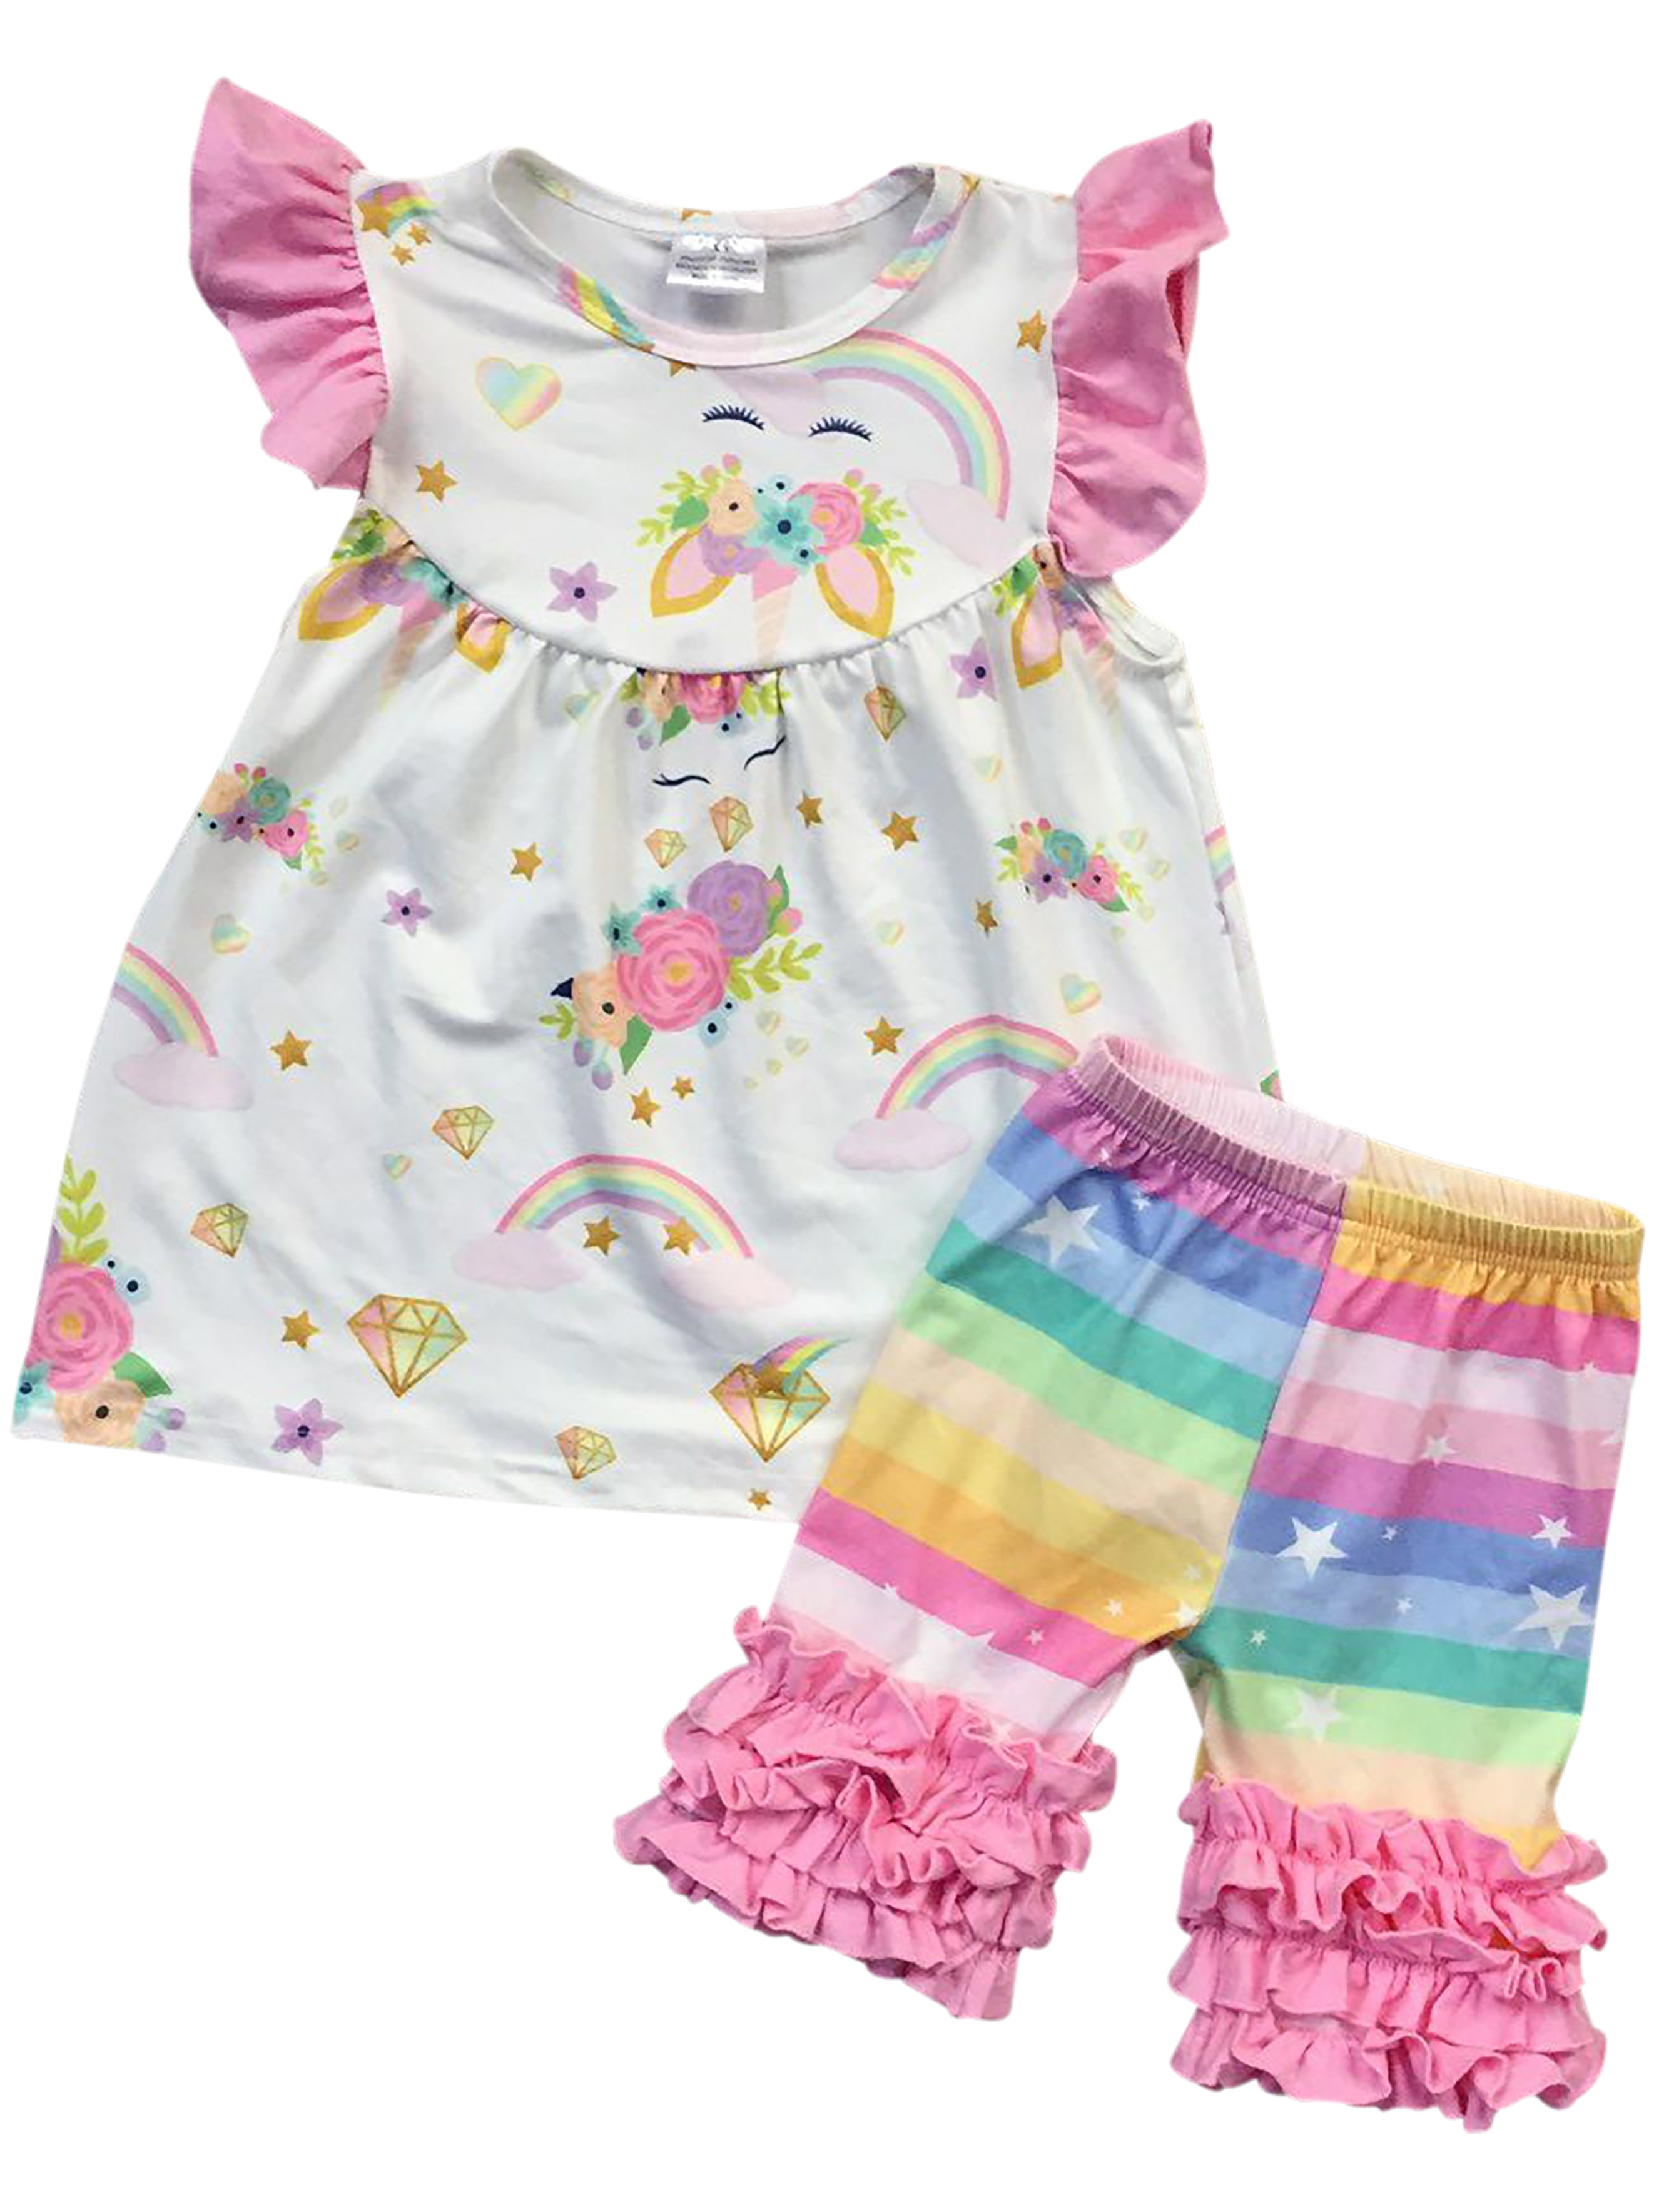 Infant Girls 2 Pieces Pant Set Unicorn Dress Ruffle Outfit Clothing Set Off White 2T XS (501323)